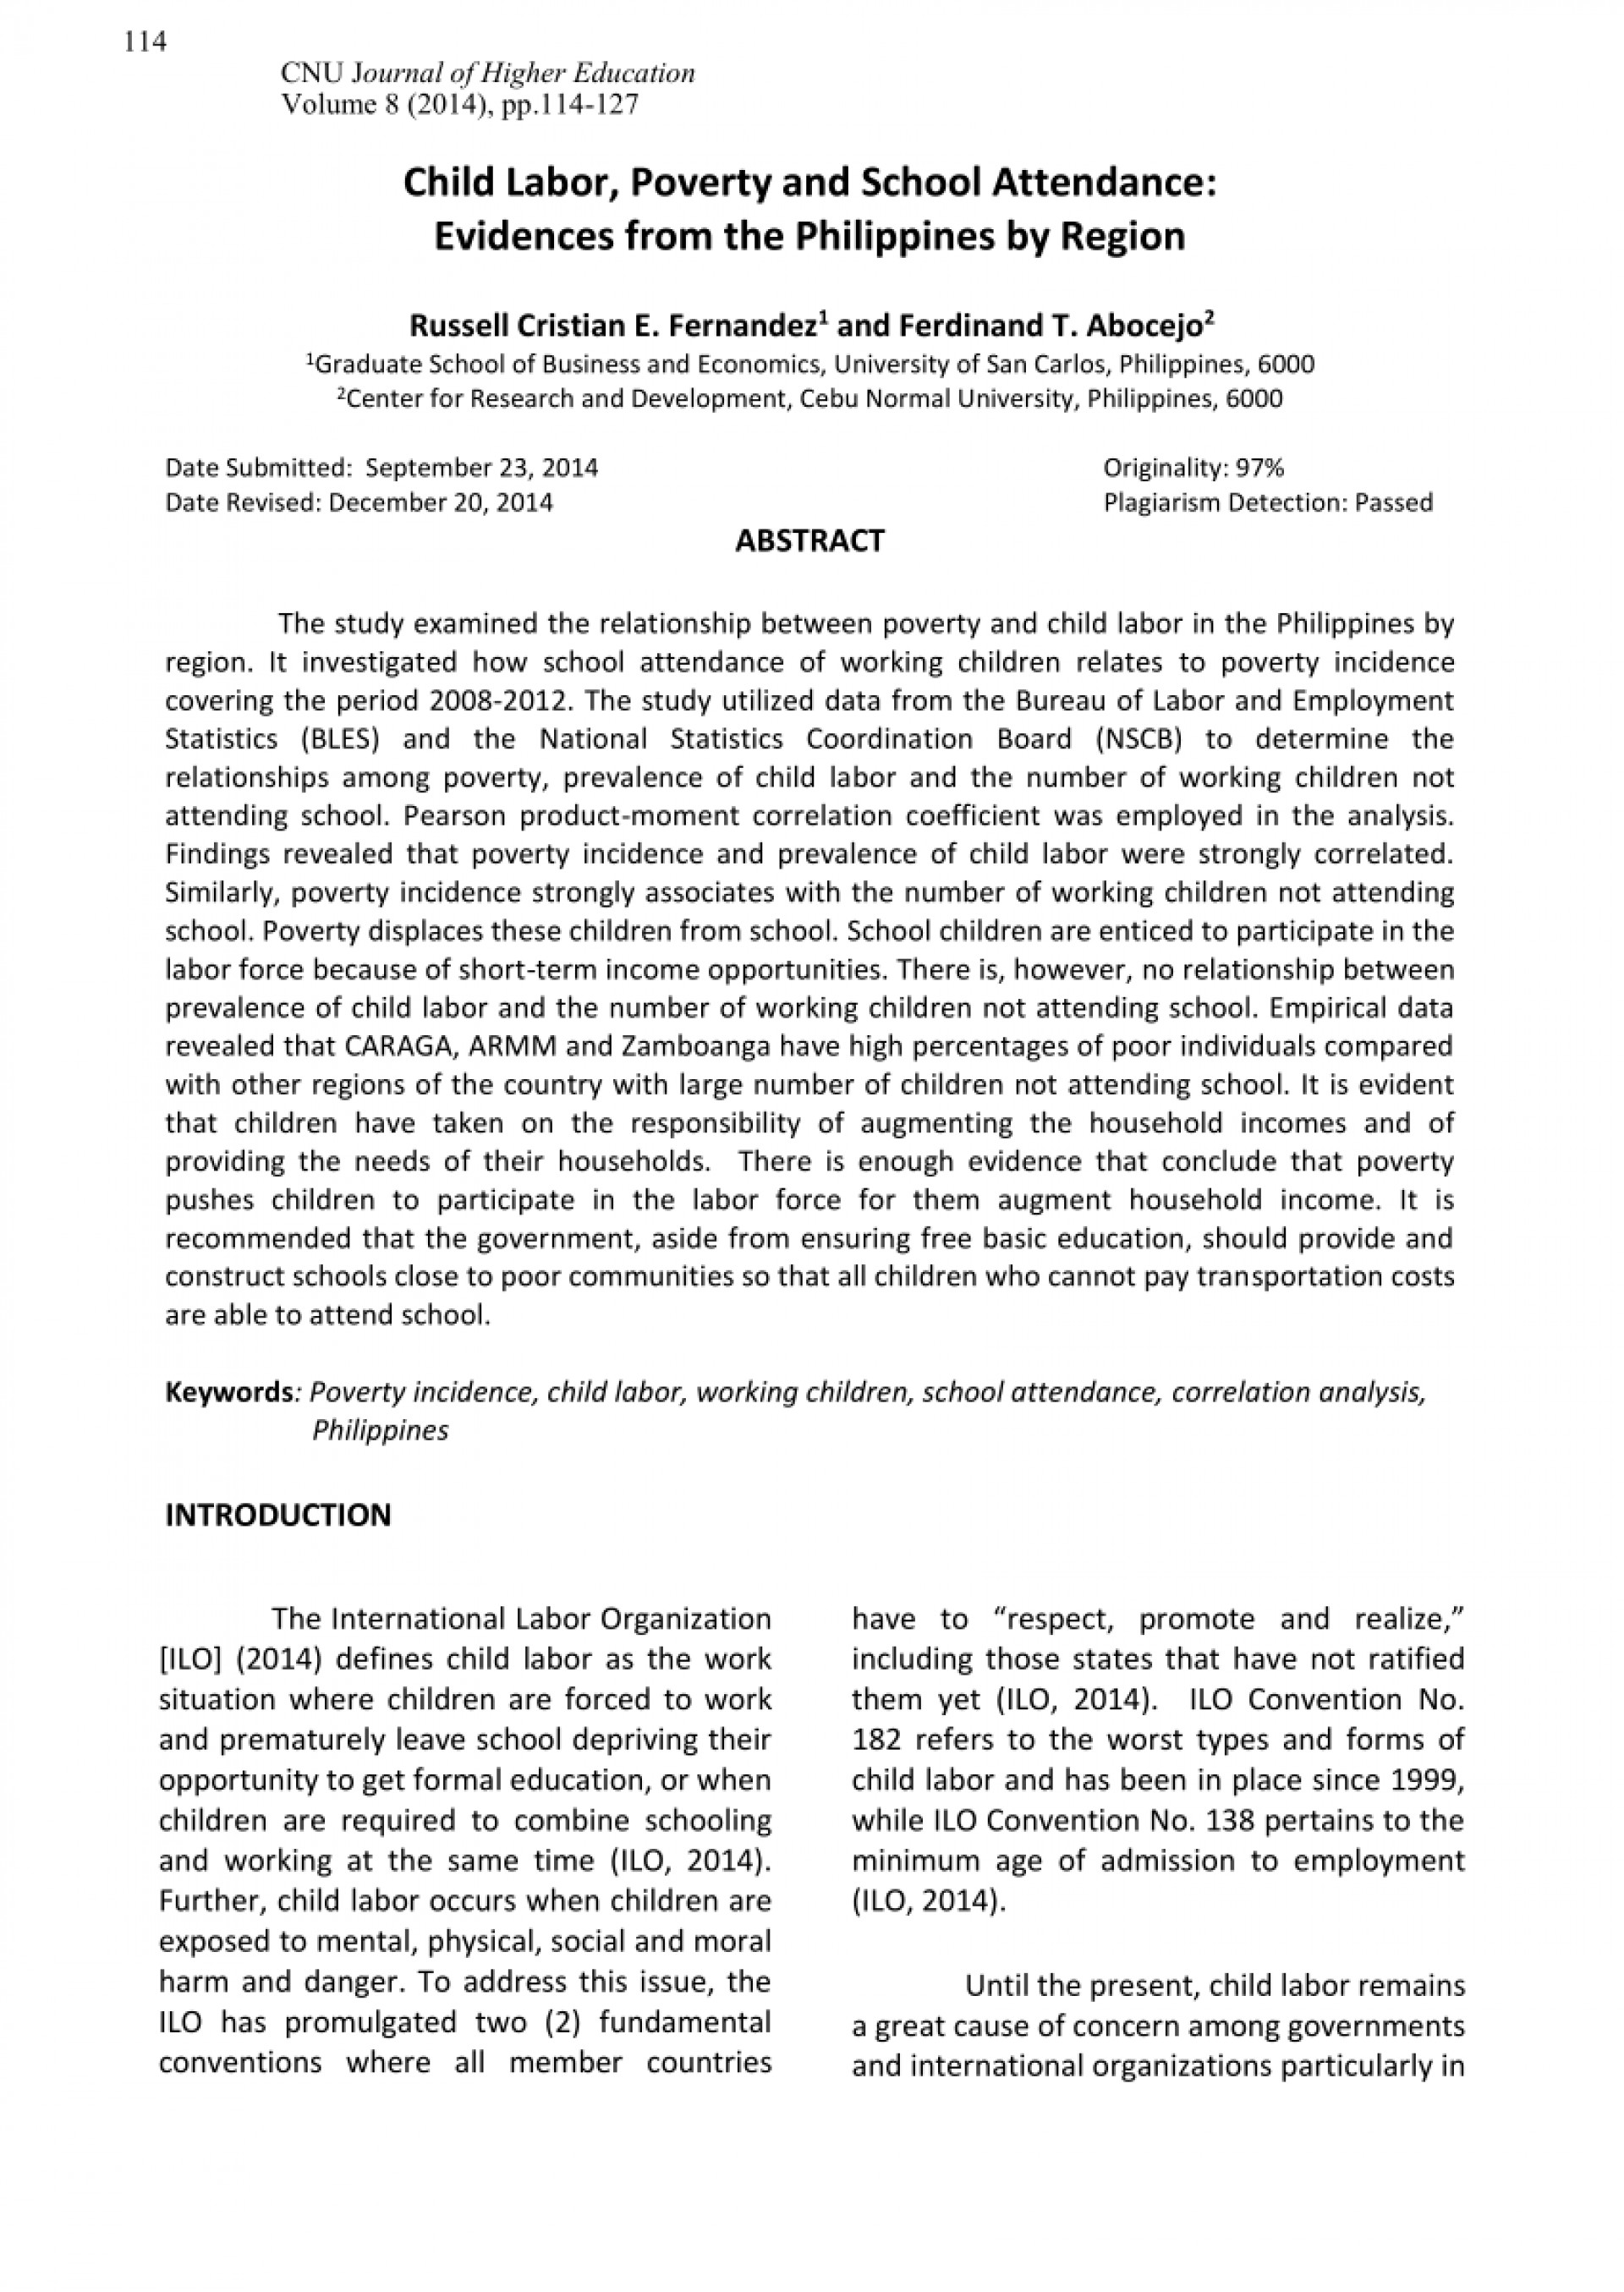 003 Largepreview Poverty In The Philippines Research Paper Remarkable Abstract 1920